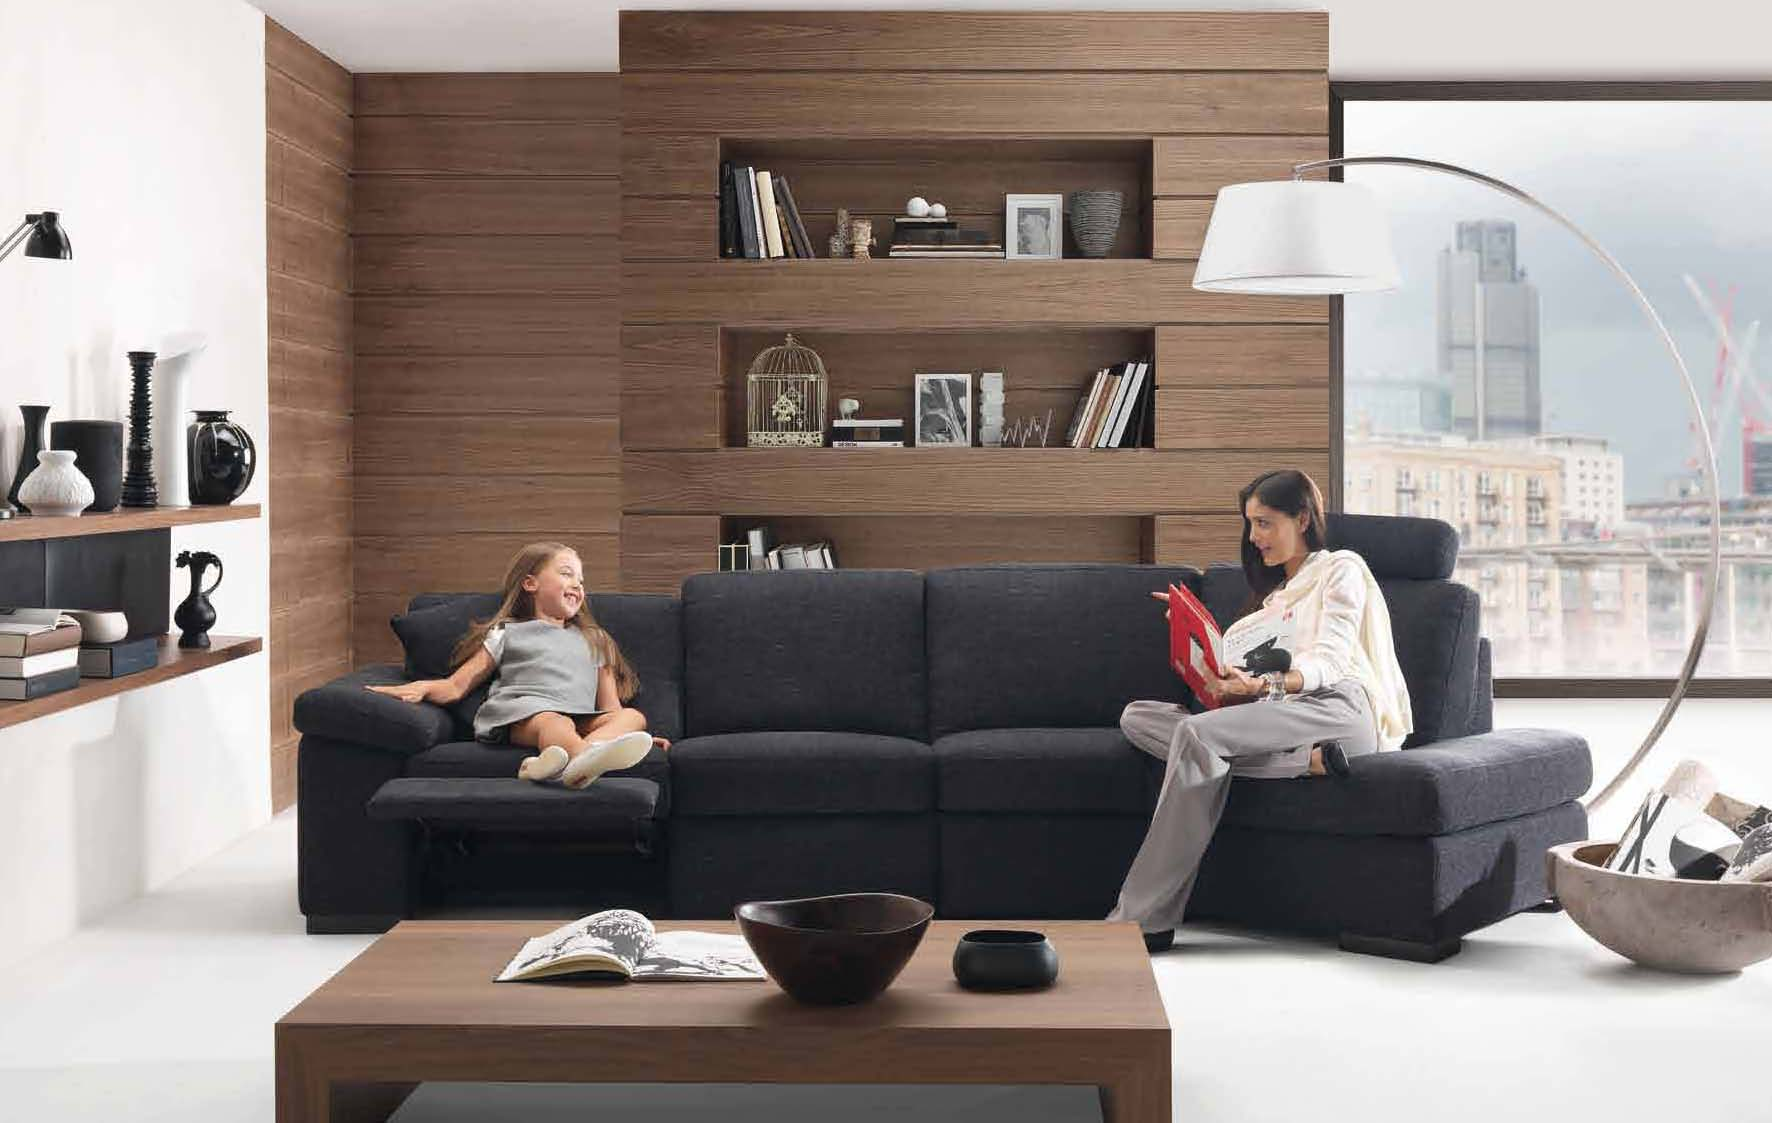 Living room styles 2010 by natuzzi for Modern apartment living room